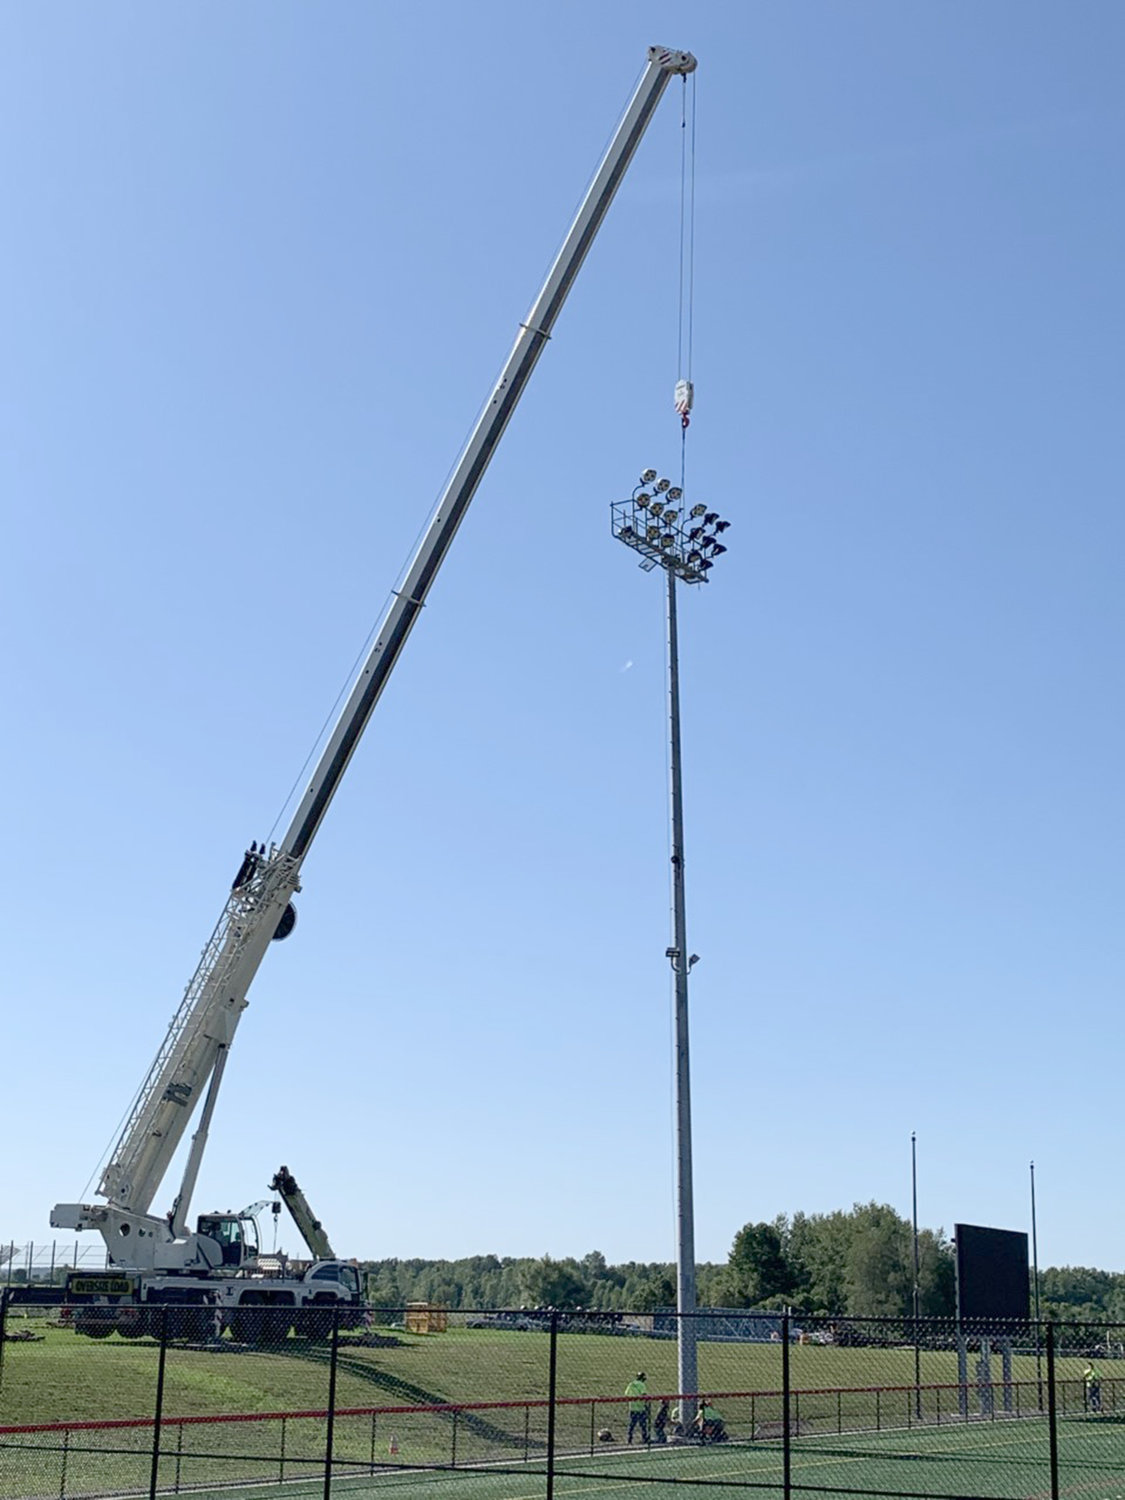 BIG REACH — A crane assists in the recent reinstallation of a light pole at the Vernon-Verona-Sherrill school district's Sheveron Stadium. Four poles containing sets of lights were brought down last spring due to structural concerns, but are back in operation after being reinstalled and undergoing final testing.